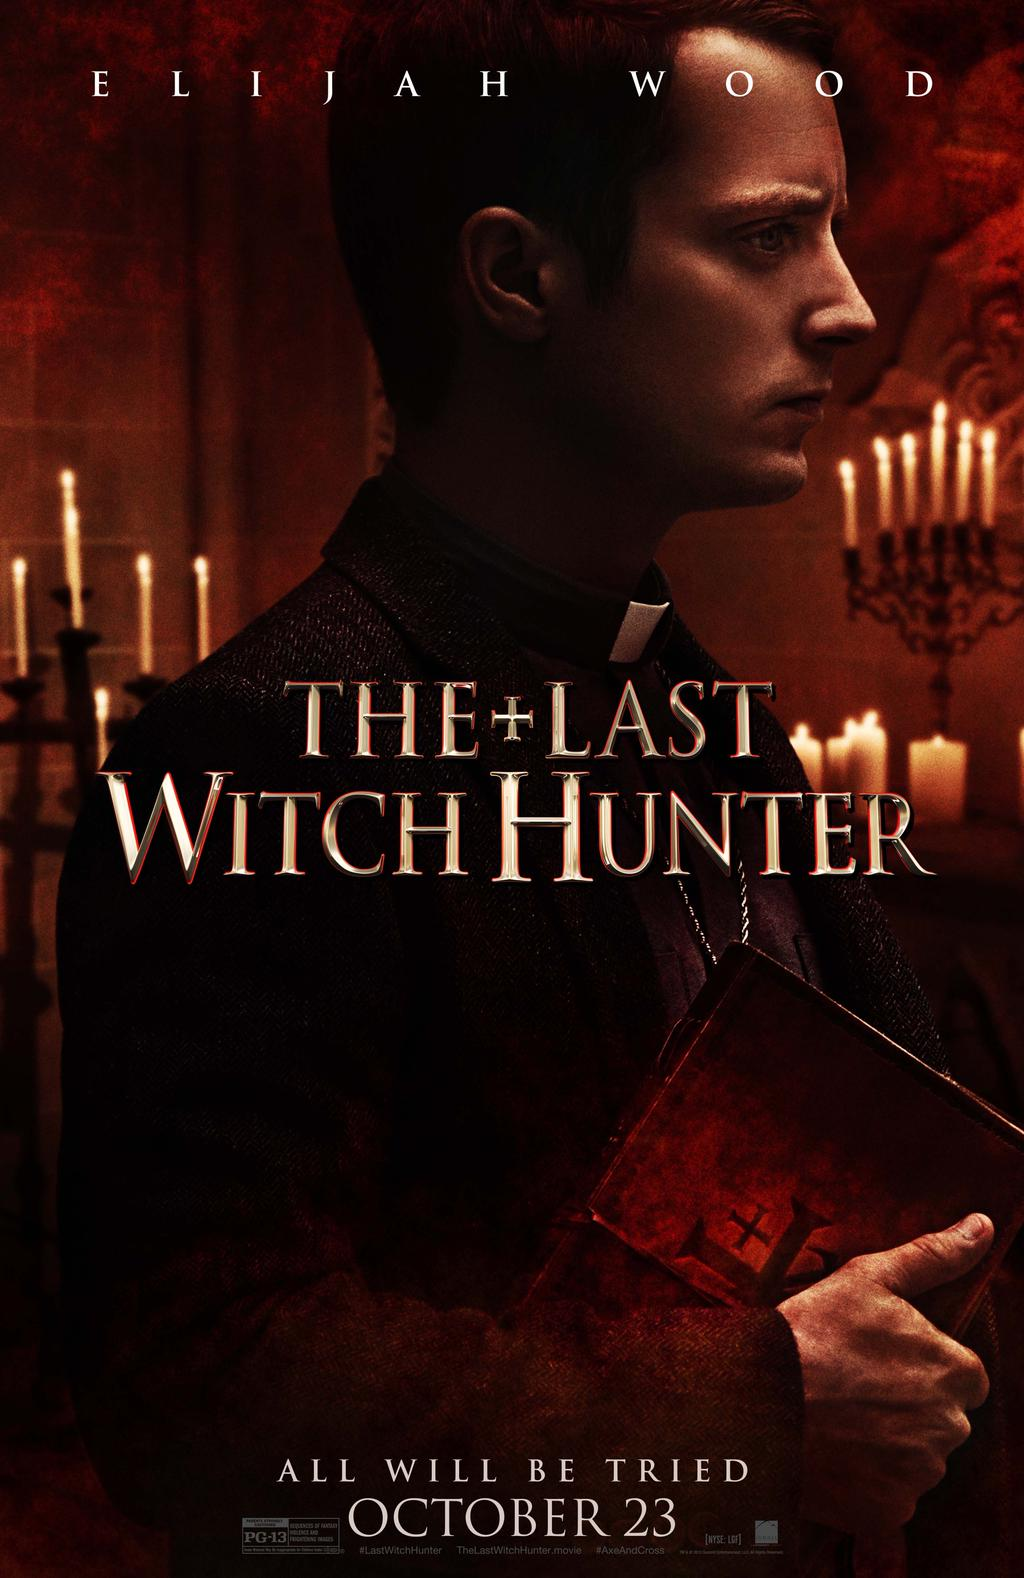 THE LAST WITCH HUNTER-17Setembro2015 (2)